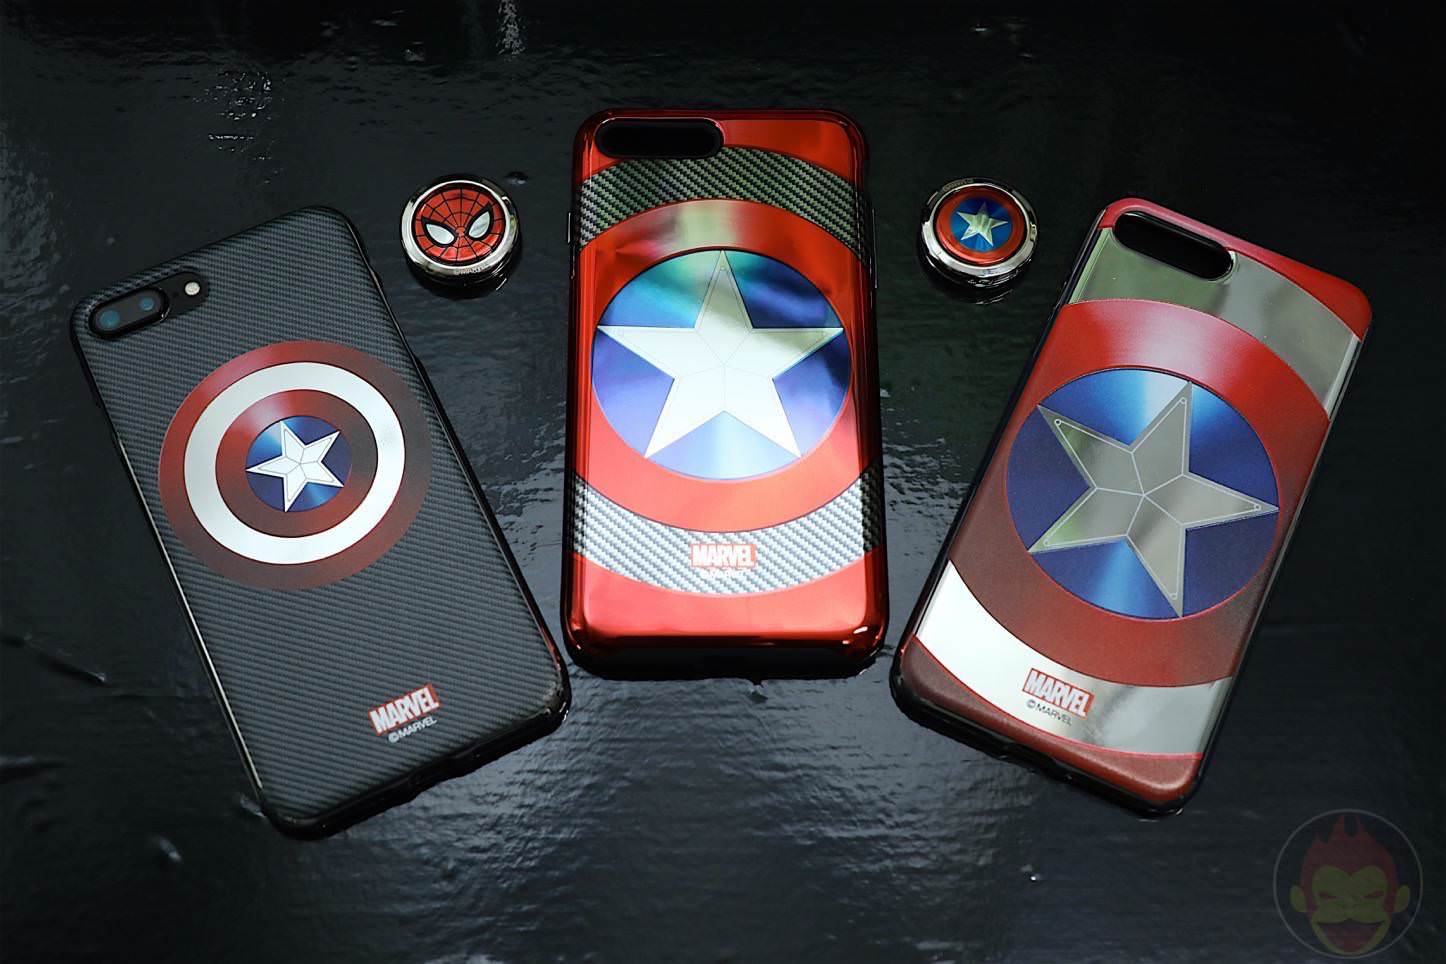 MARVEL-Design-iPhone-7-Plus-Case-and-Ring-16.jpg